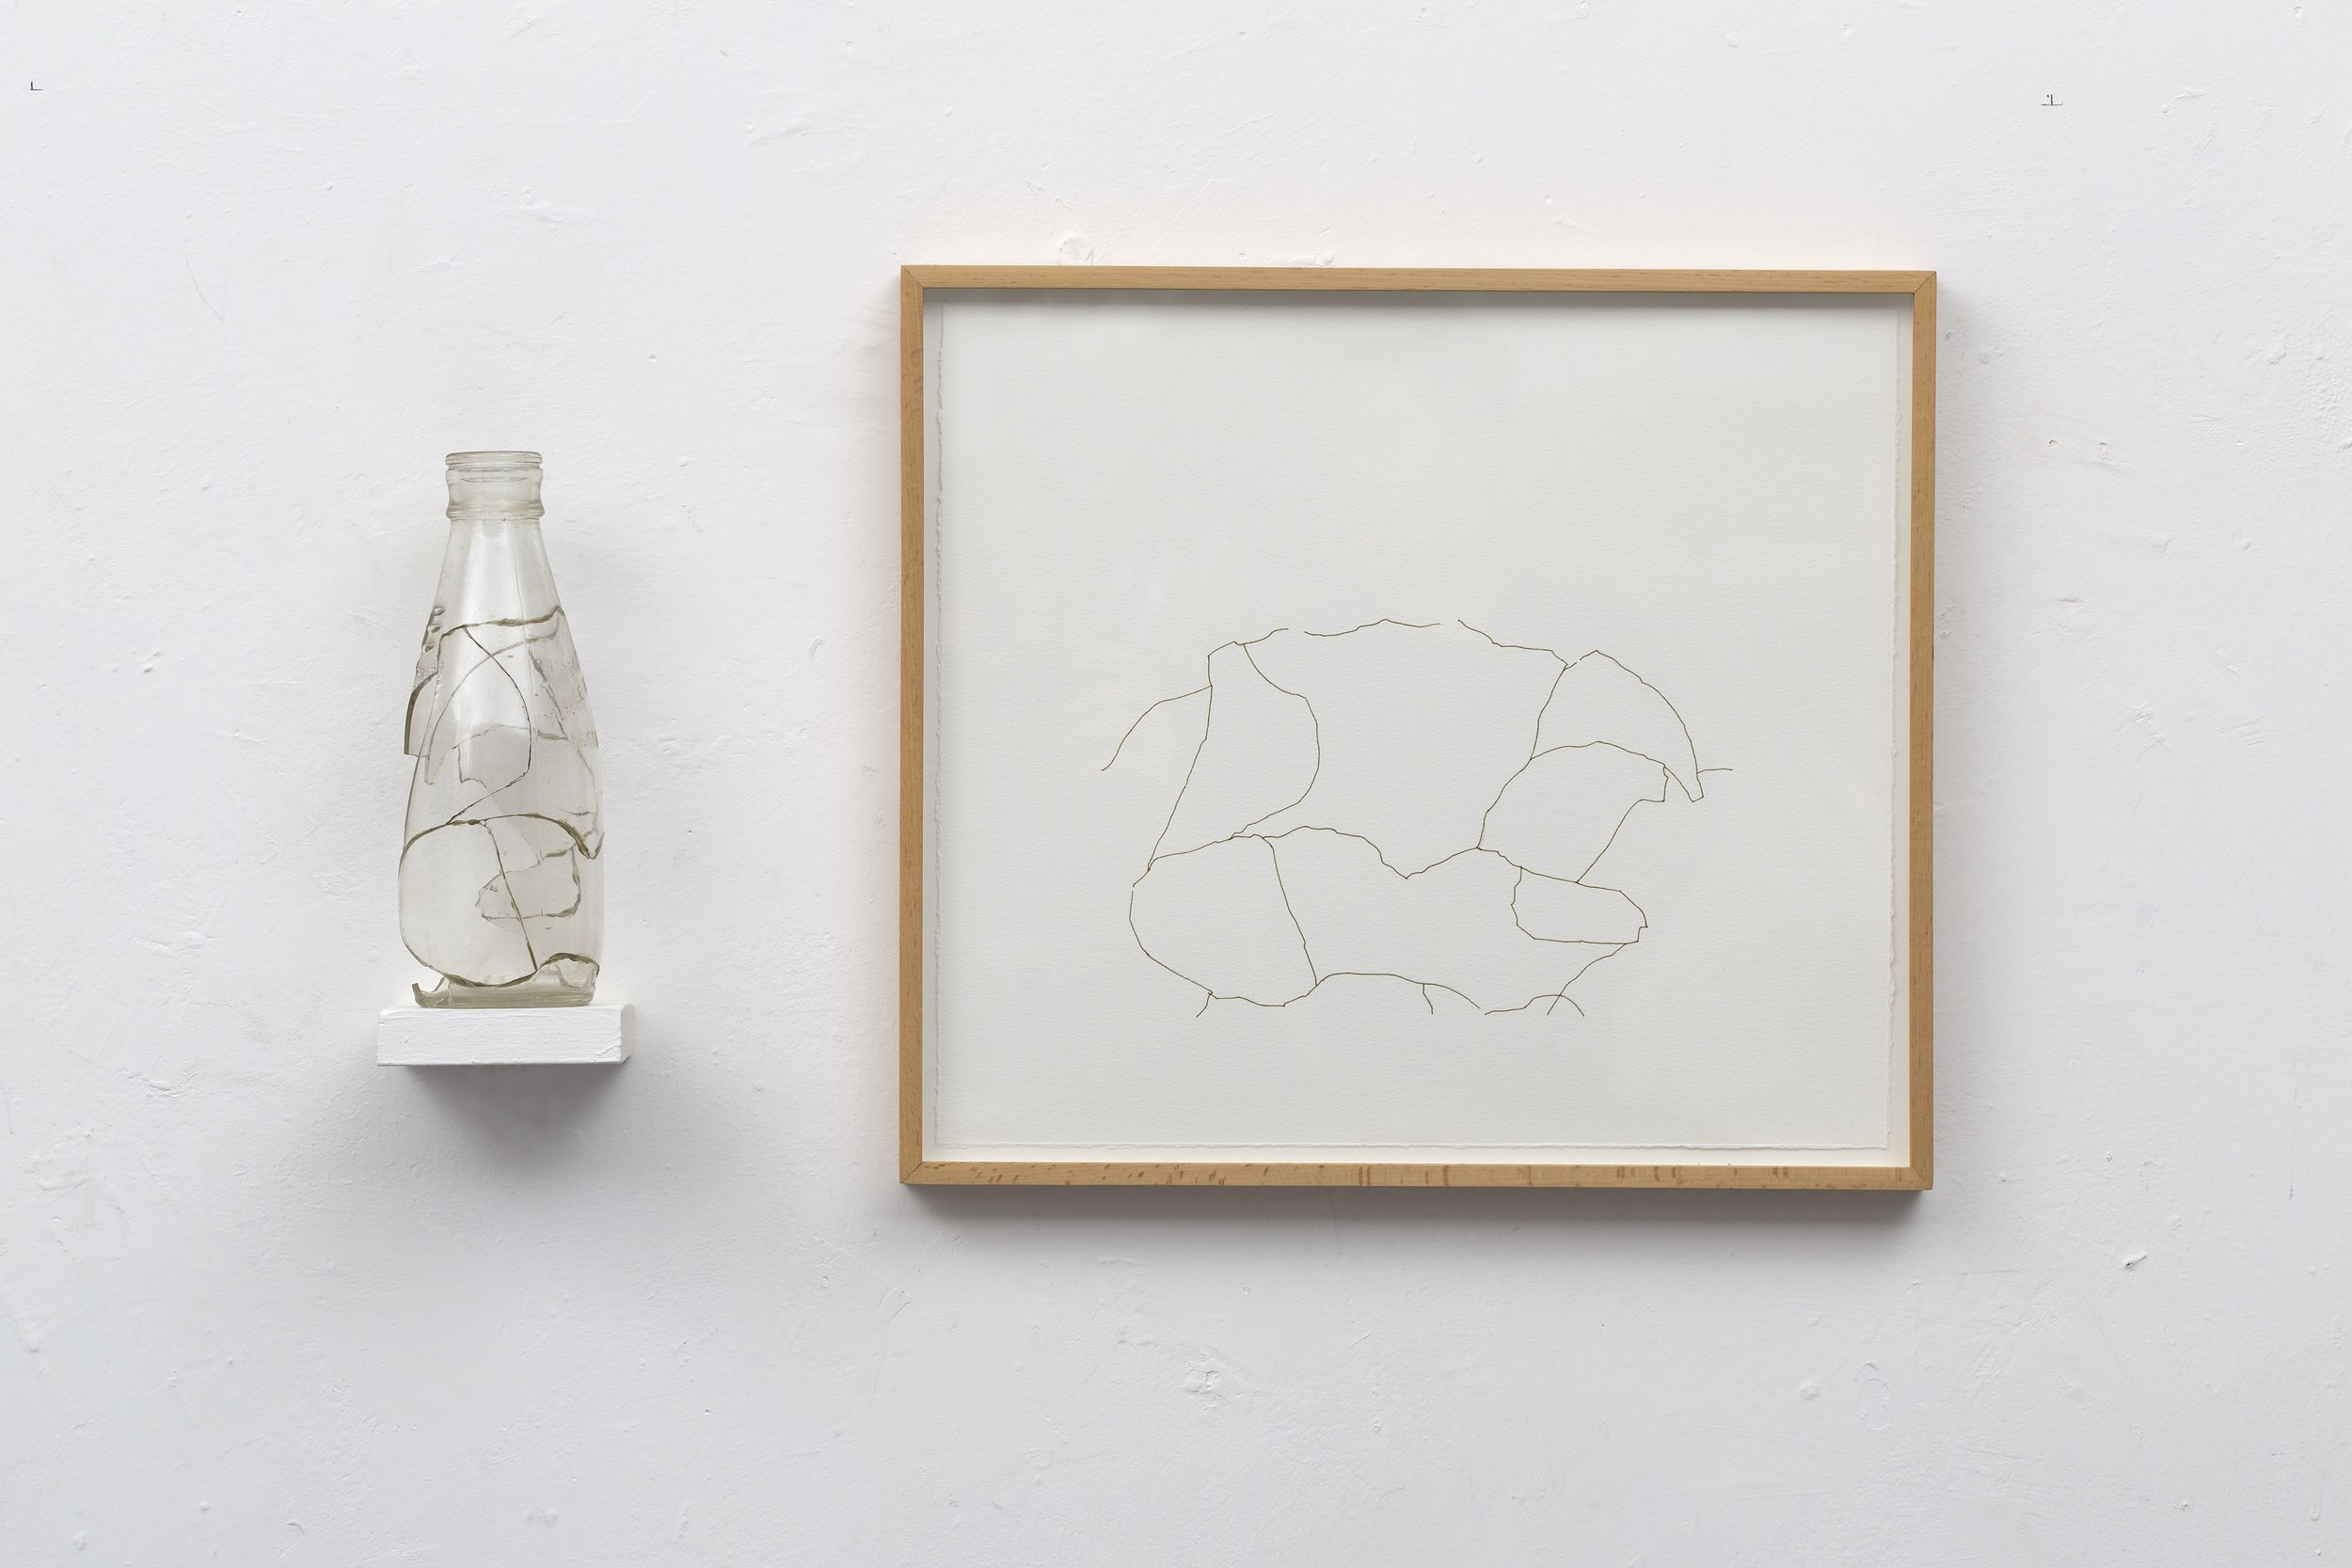 Amikam Toren (1975)  Simple Fraction III.  Glass, araldite, shelf, drawing. 36 x 64 x 9 cm.